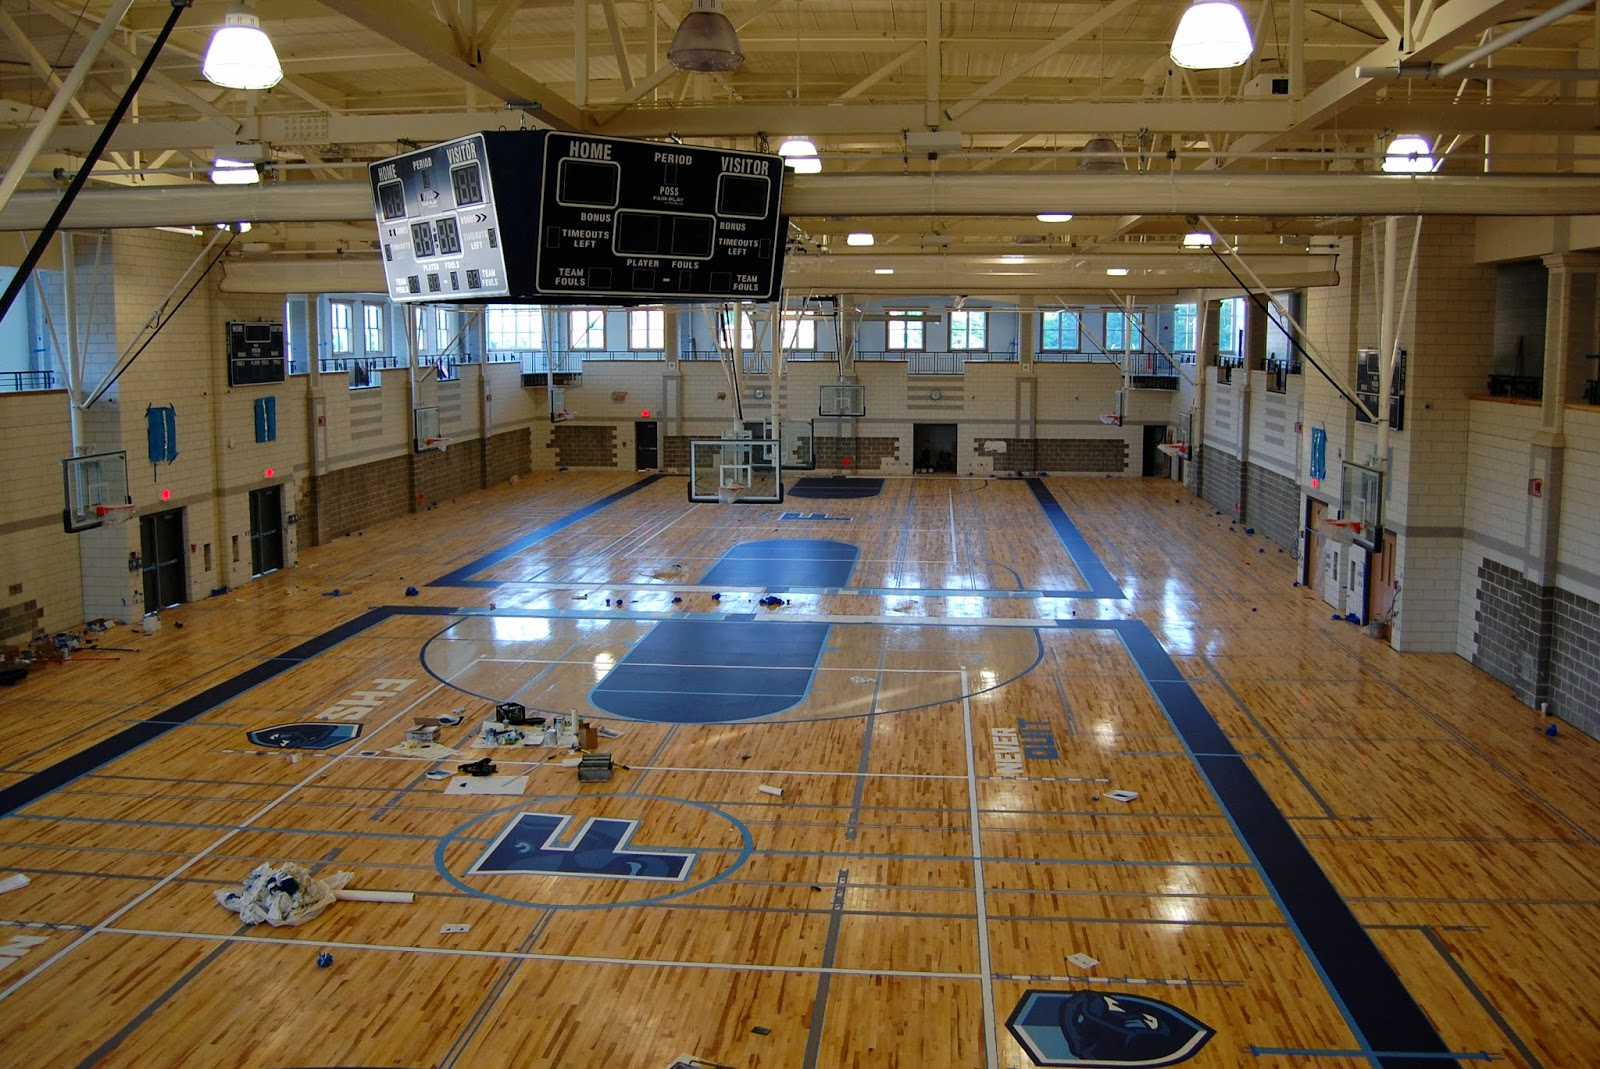 Franklin matters inside the new fhs part 2 of 2 for Basketball gym dimensions